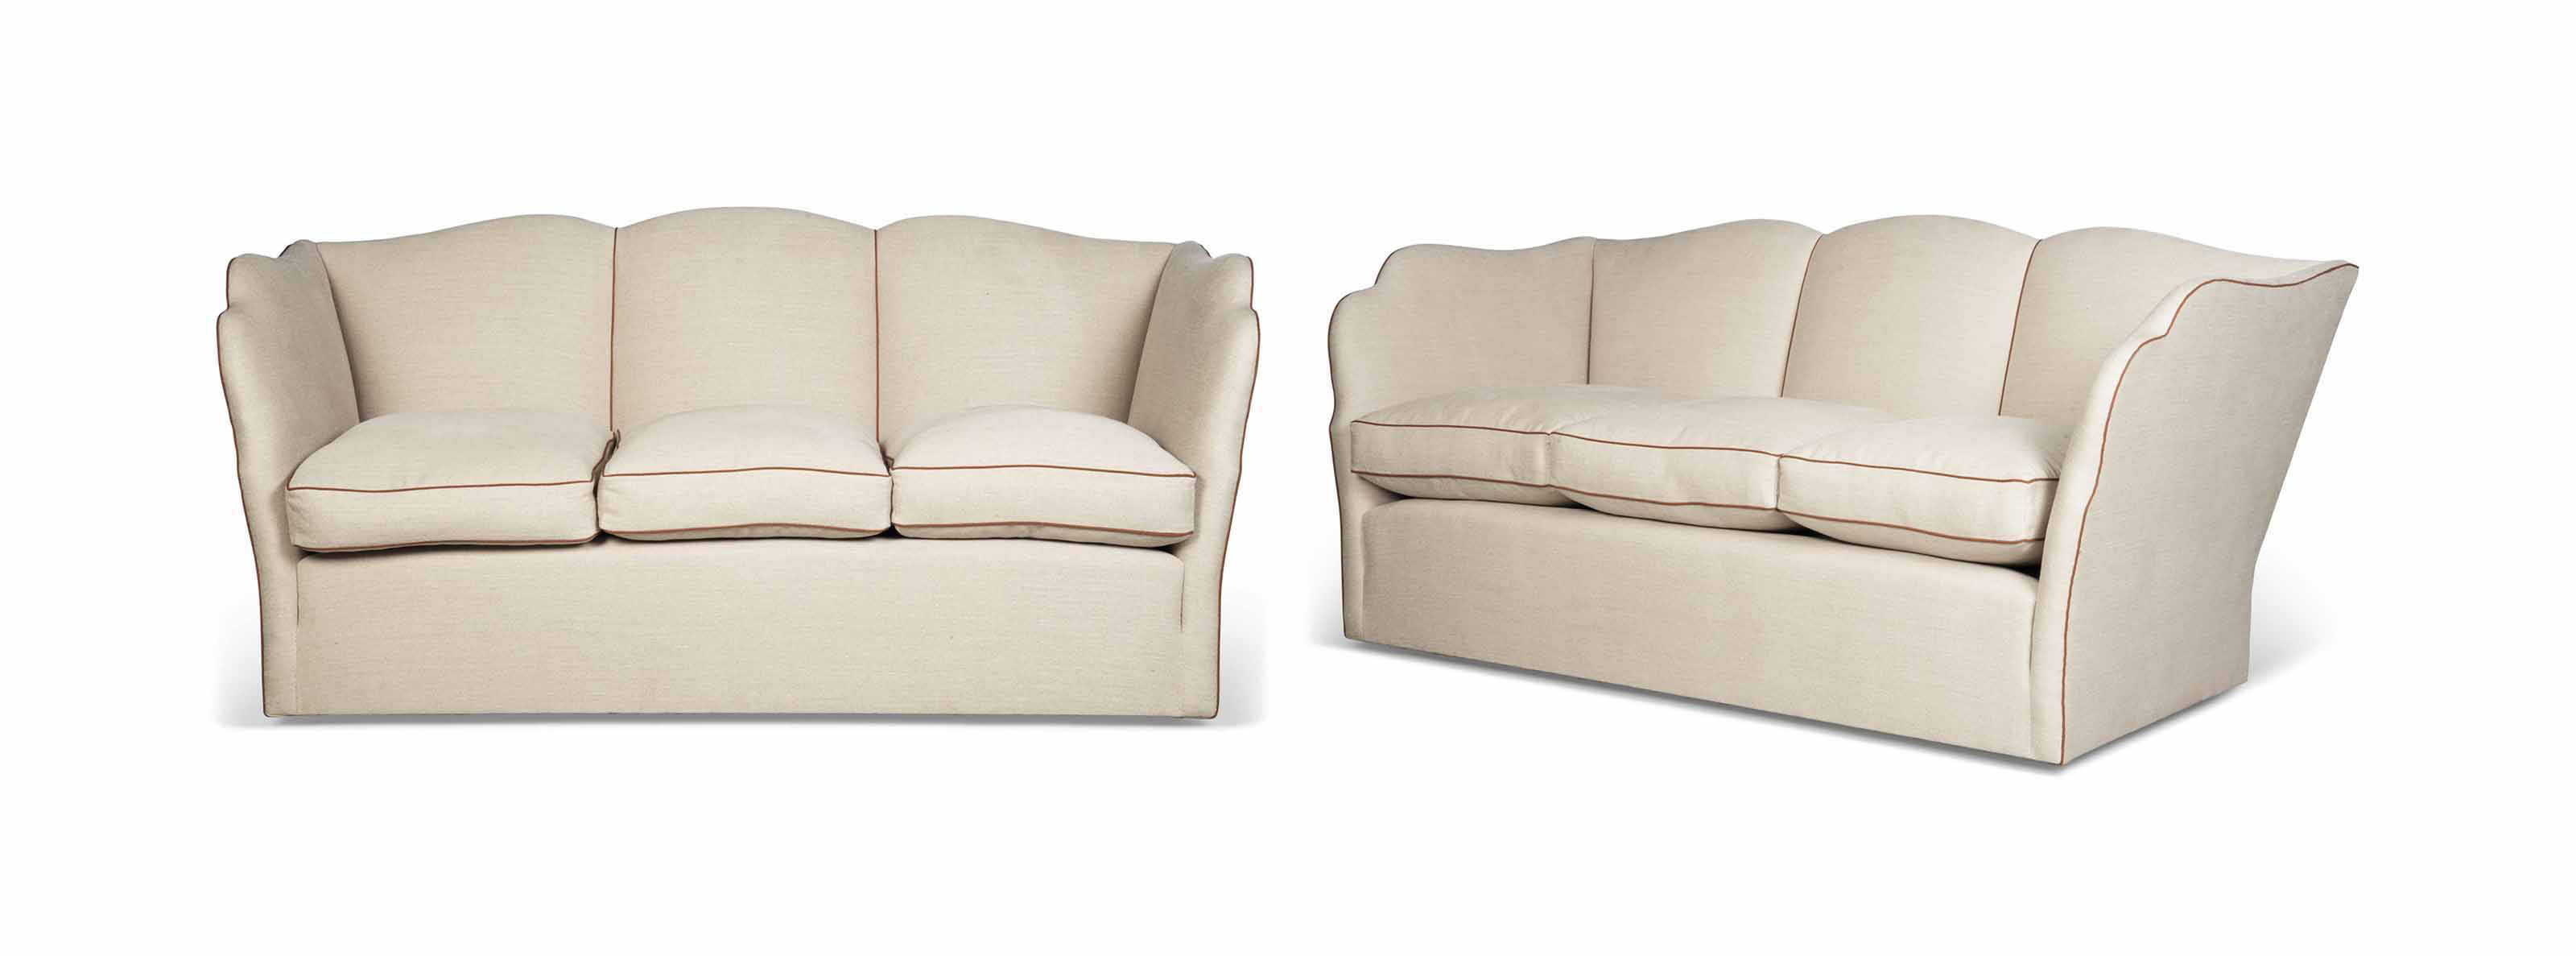 A PAIR OF 1930s STYLE SOFAS